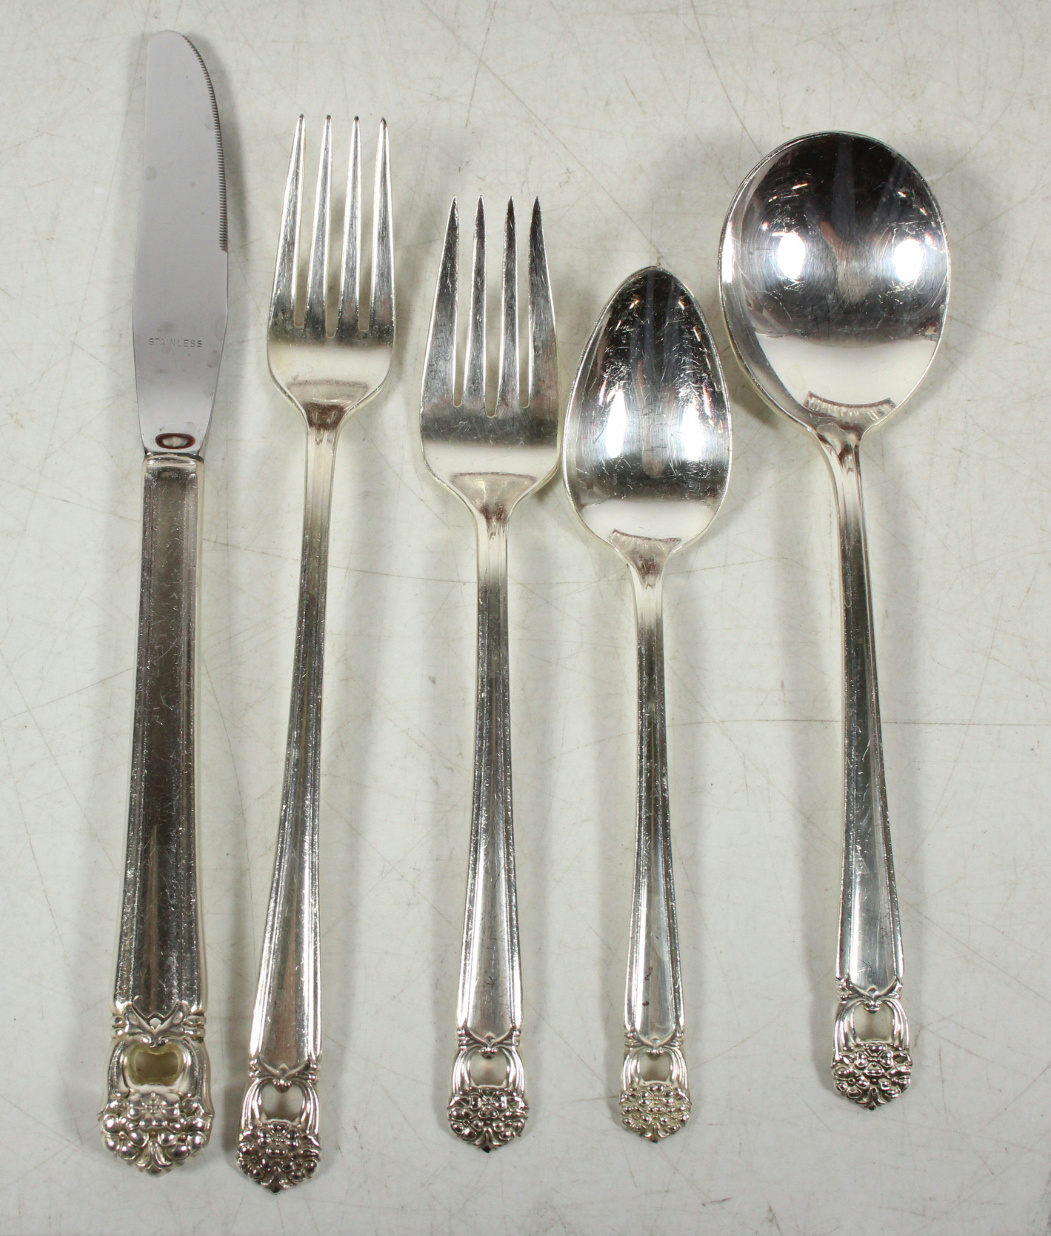 ETERNALLY YOURS 1847 ROGERS BROS silverplate flatware set